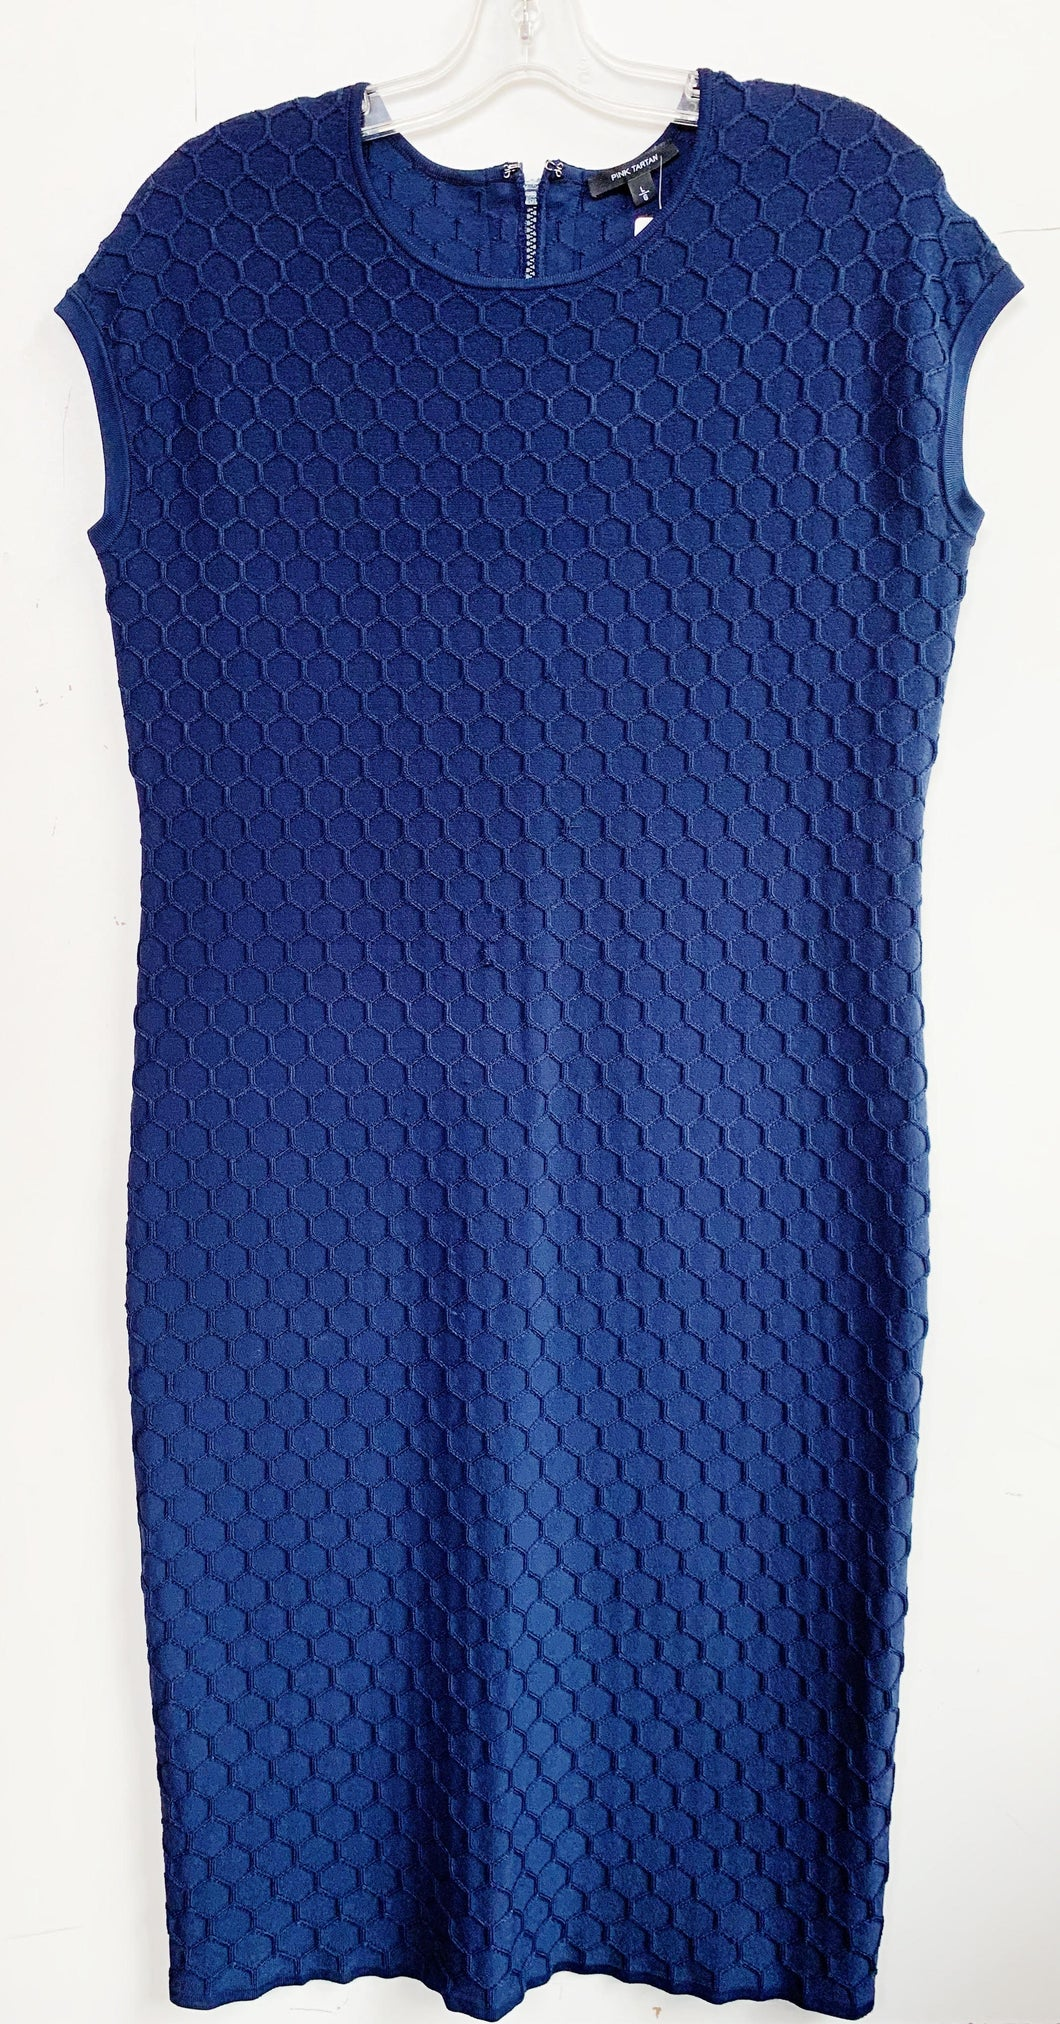 Pink Tartan Navy Sleeveless Dress with Honeycomb Texture Size L